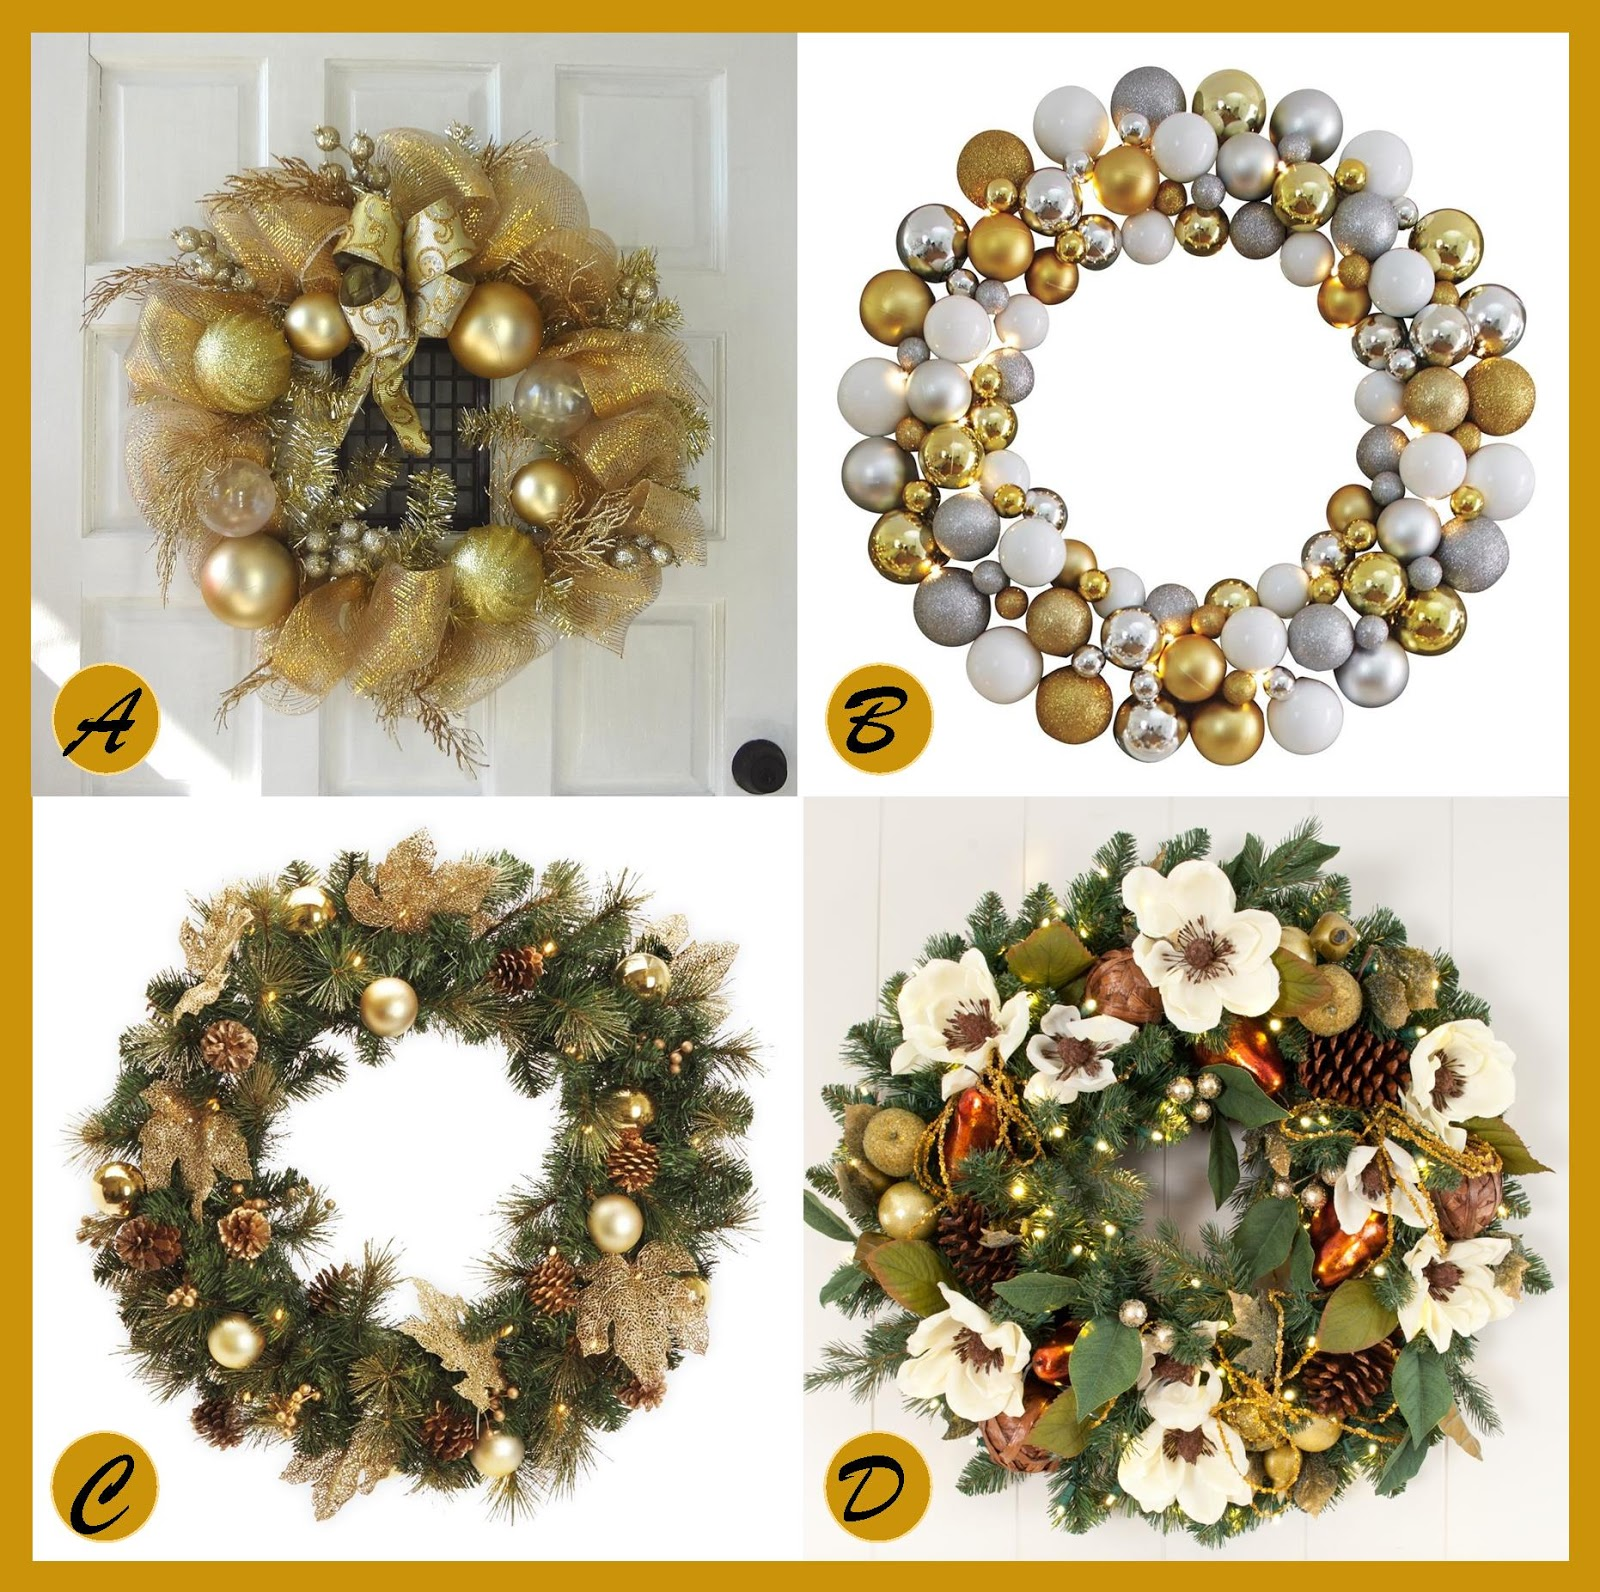 go for the gold this holiday seasonhere are a few beautiful golden themed holiday christmas wreaths that will make a stylish statement on your front